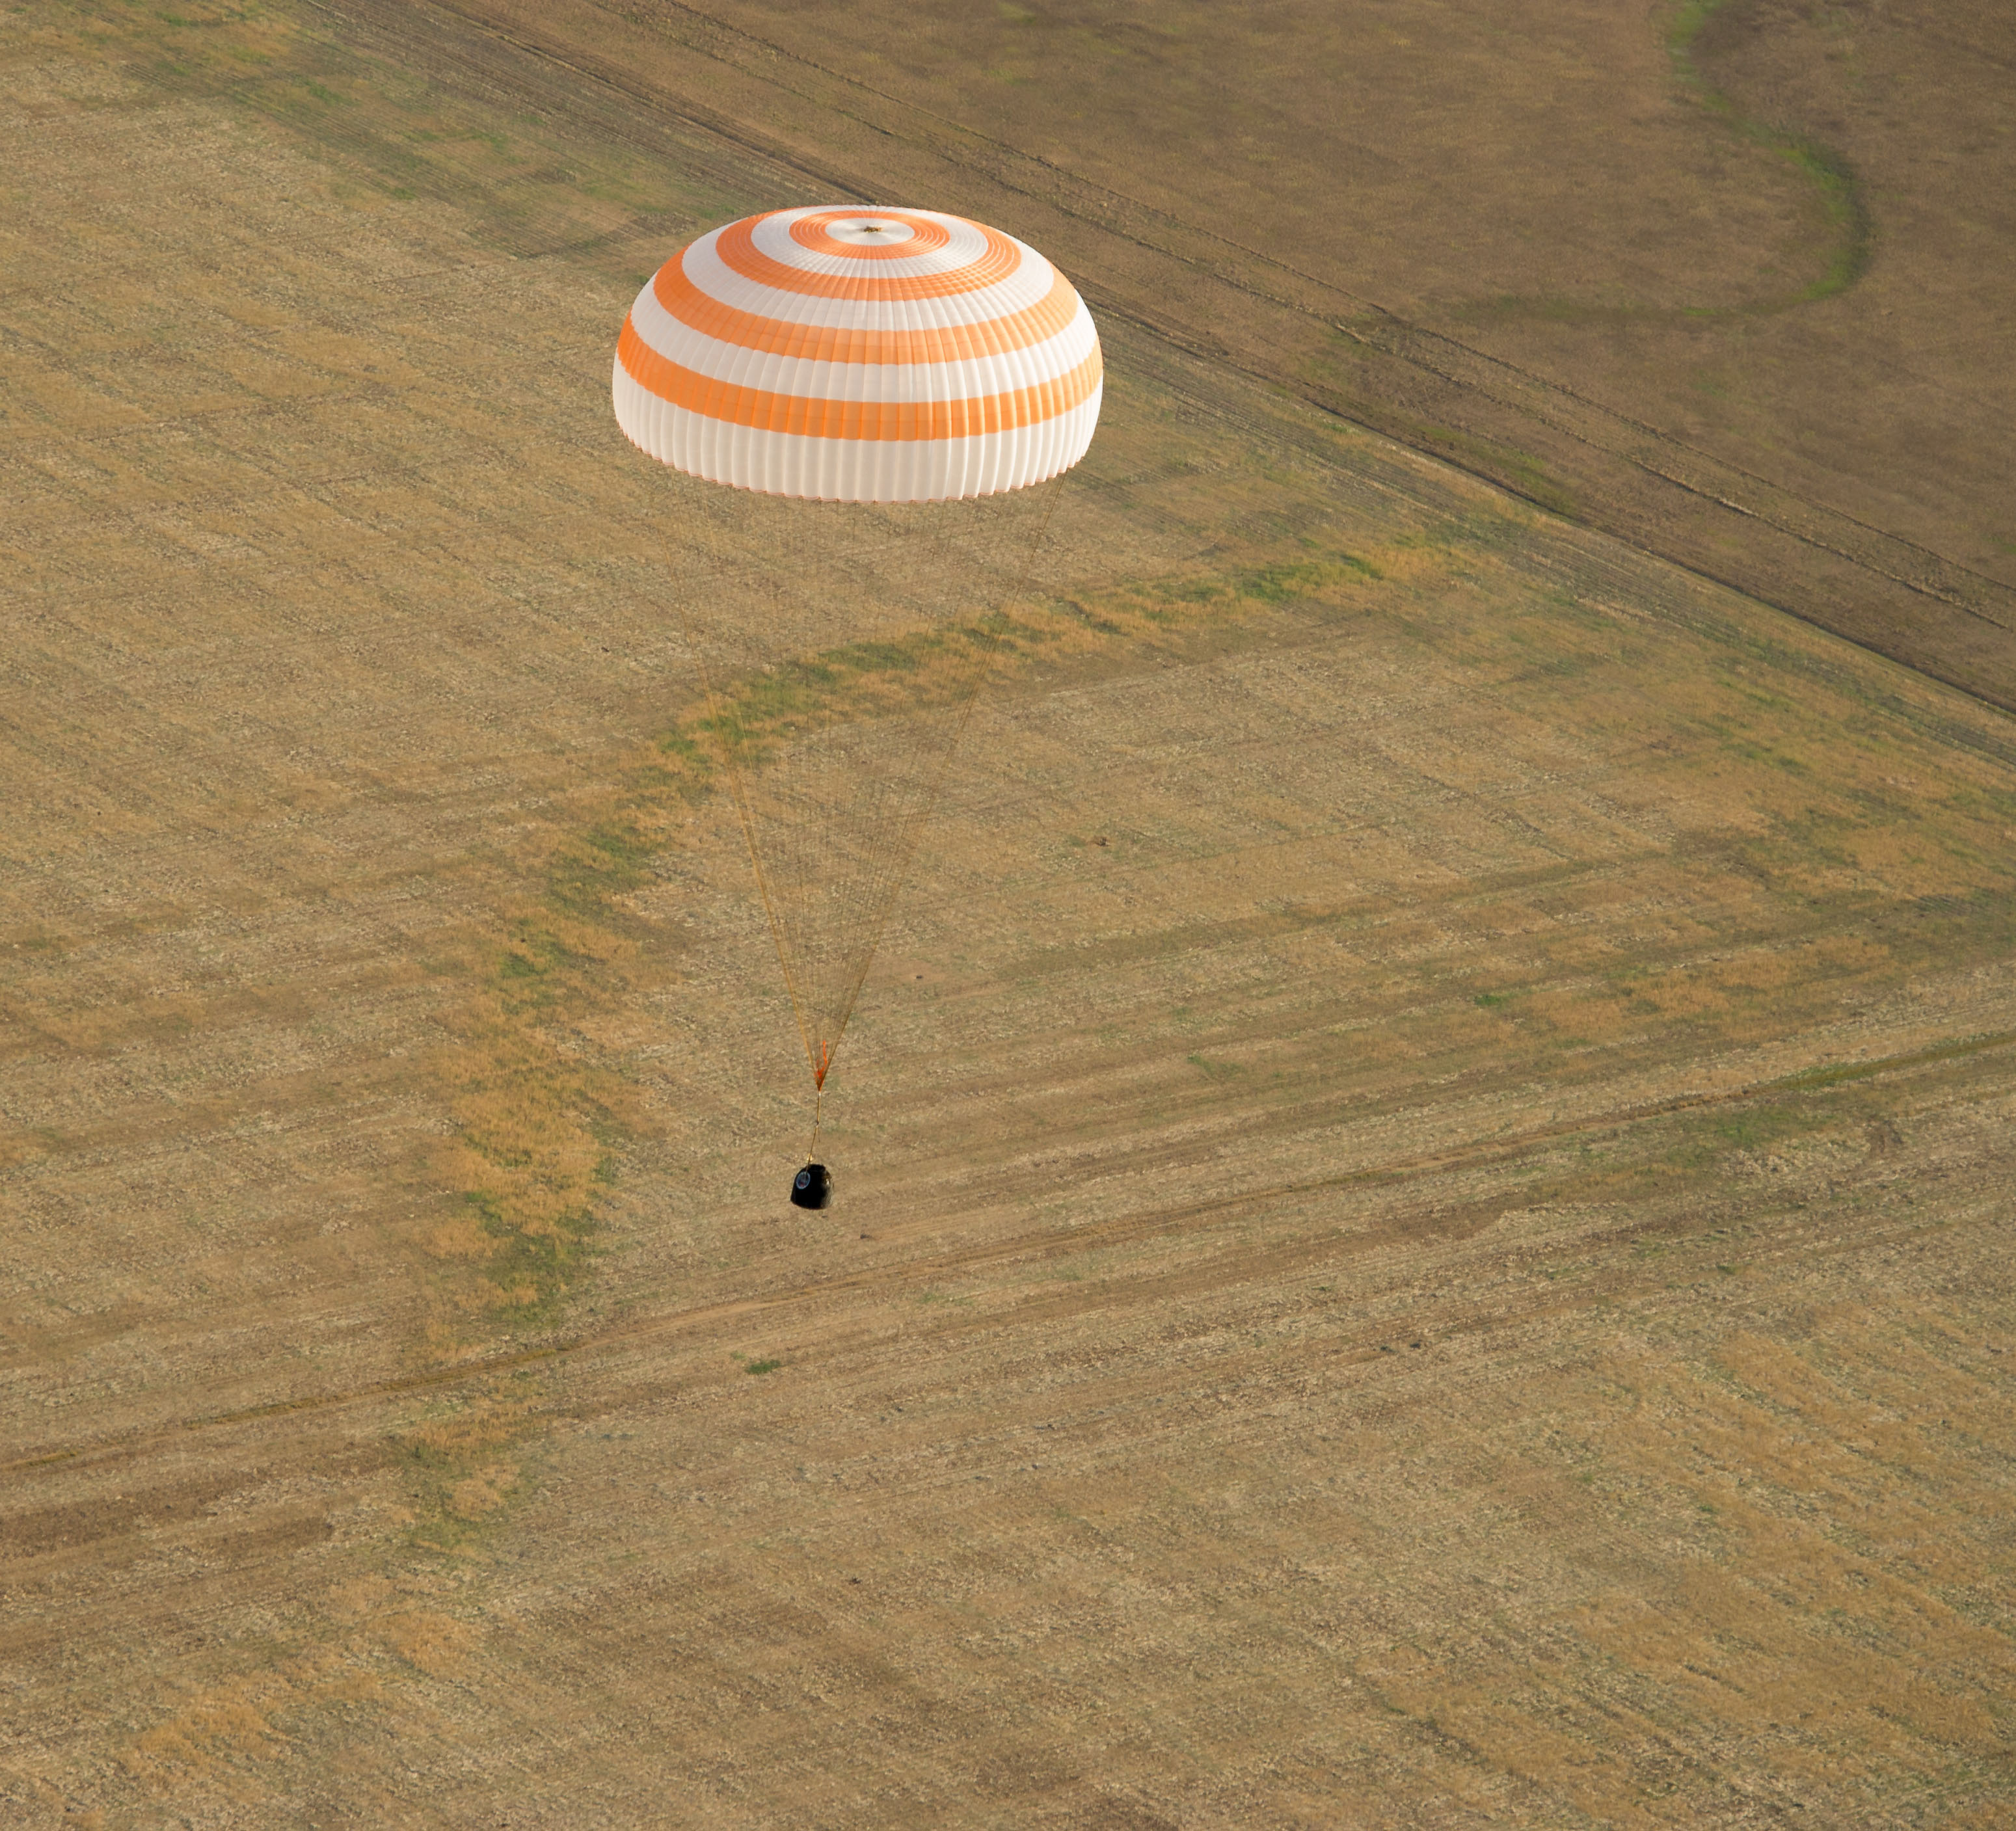 The Soyuz capsule floats as it brings Commander Gennady Padalka of Russia, NASA Flight Engineer Joe Acaba and Russian Flight Engineer Sergei Revin to a landing area near the town of Arkalyk, Kazakhstan. When it detached from the space station, the capsule was over Kenya.